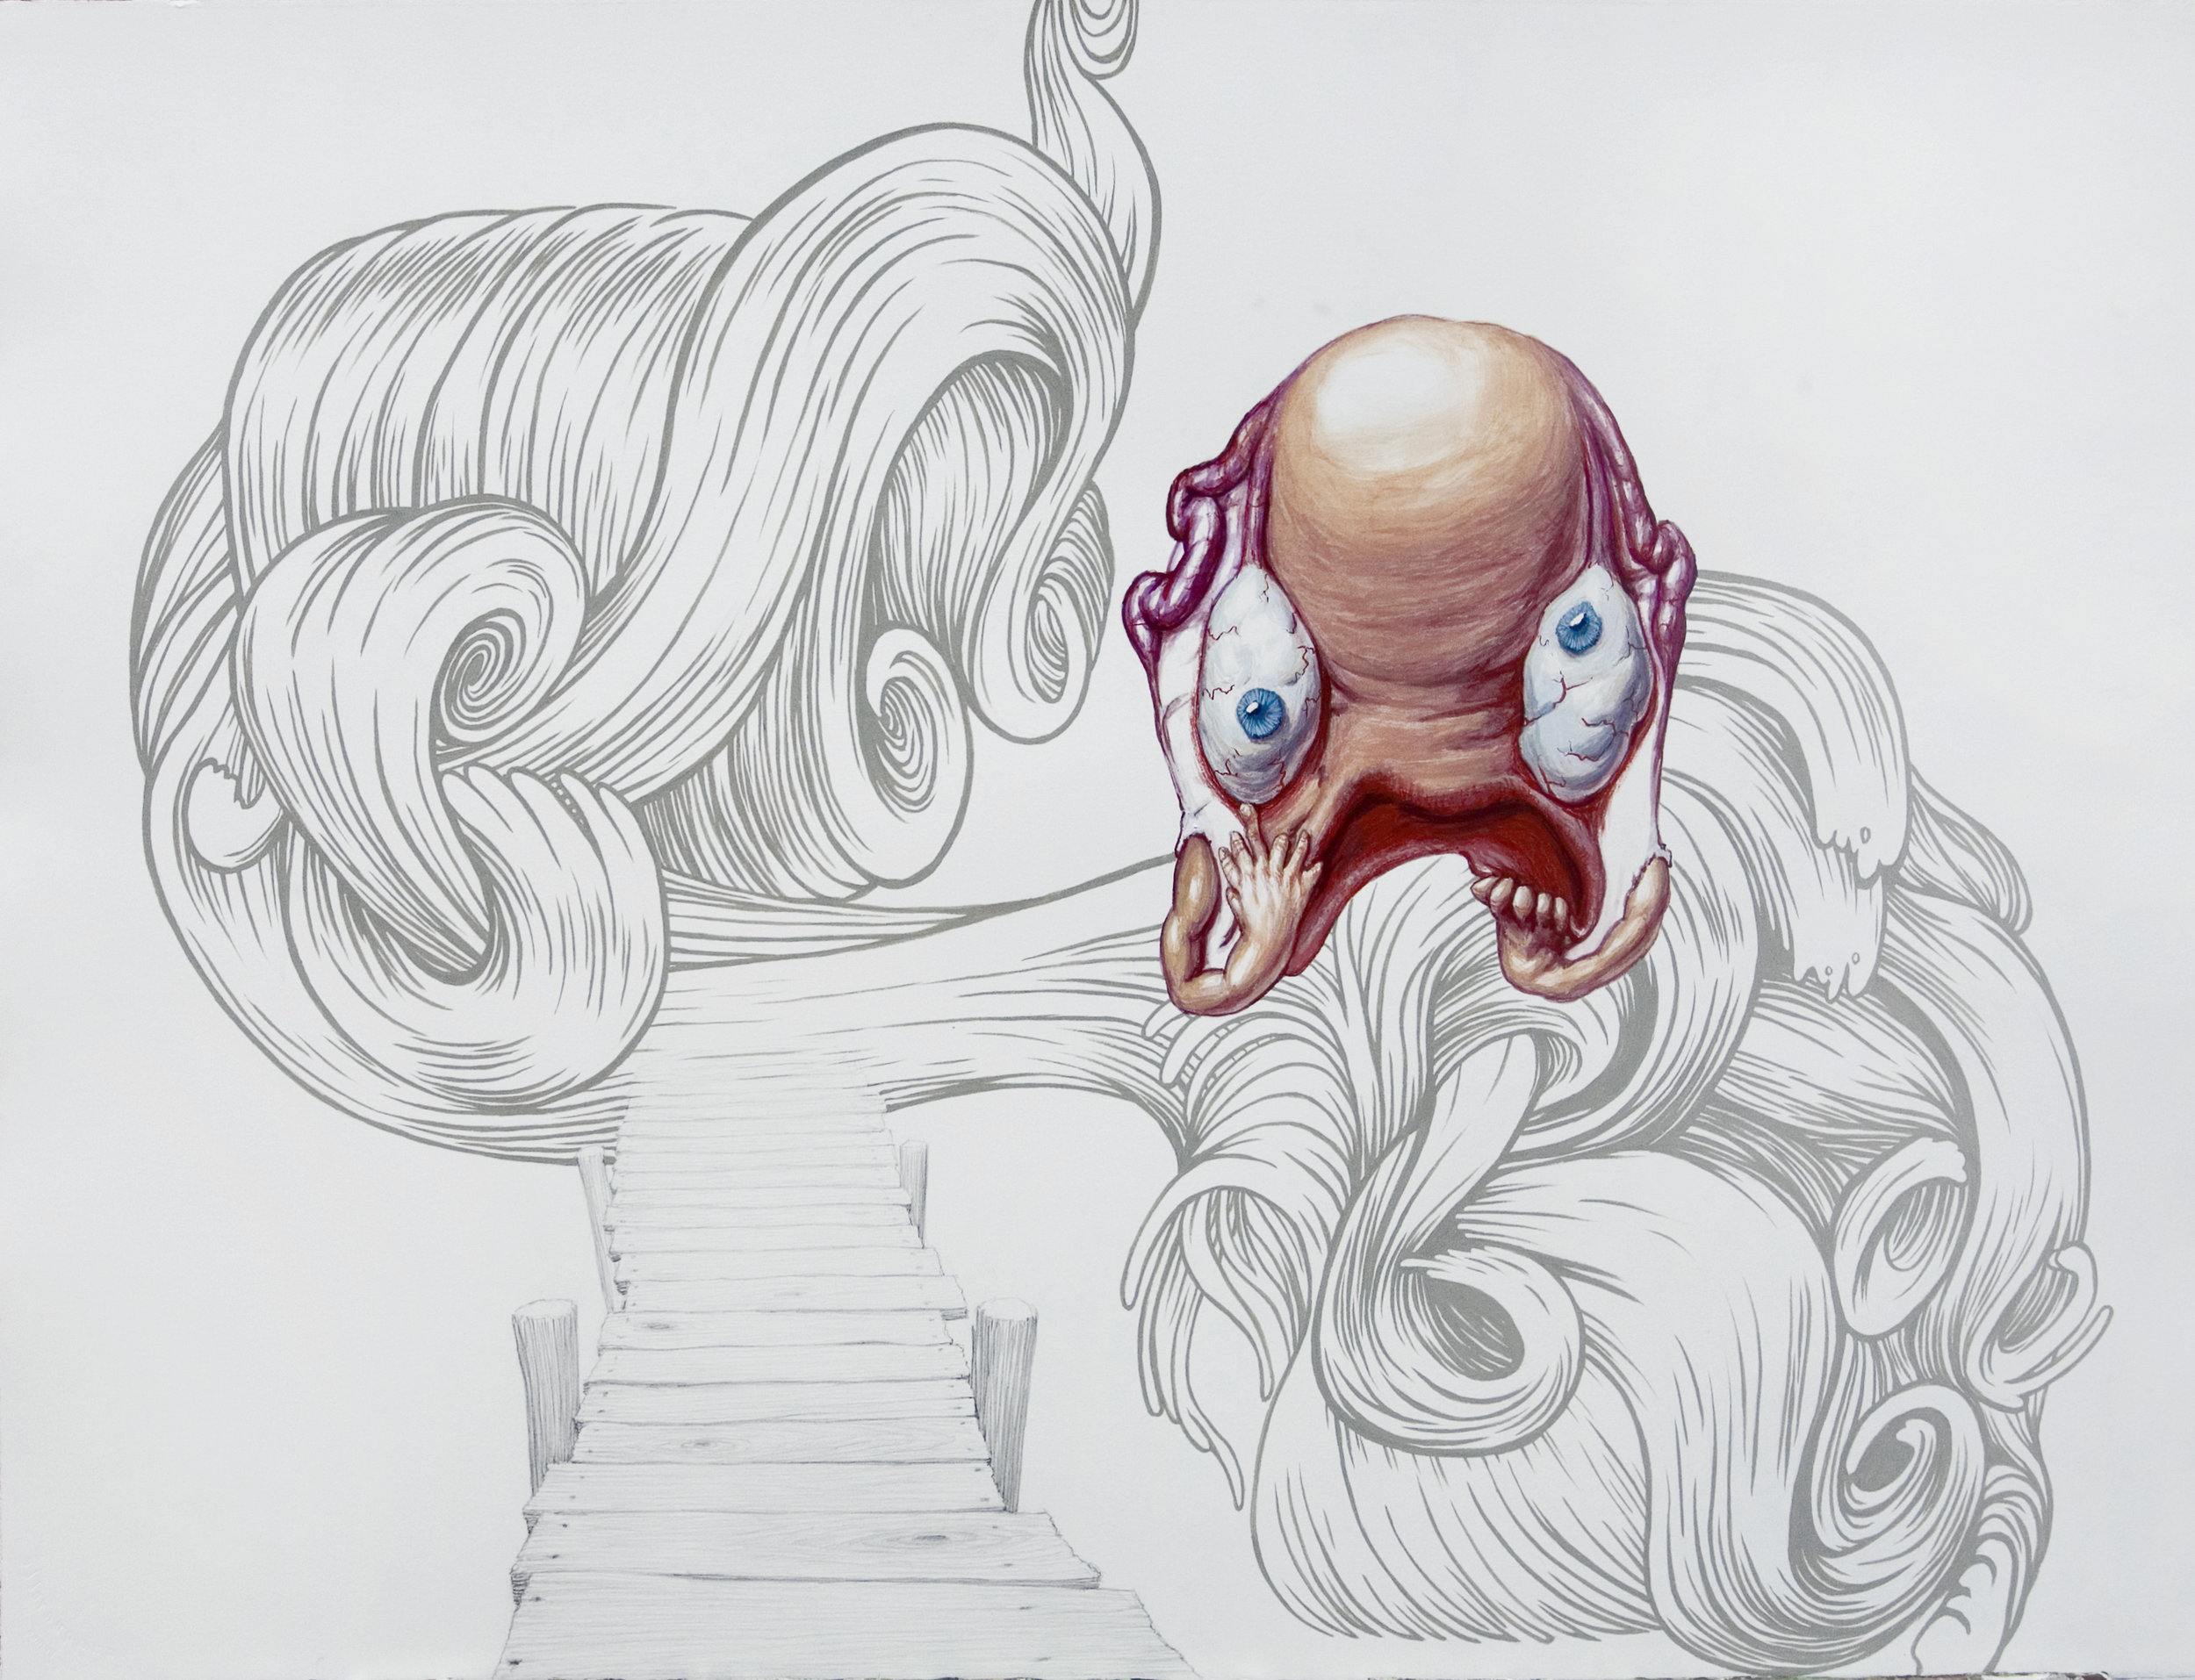 Anatomy Weird-ohs (Uterus), 2011 gouache, pencil and watercolor on paper 56,2 x 75,7 cm - 22 1/8 x 29 3/4 inches